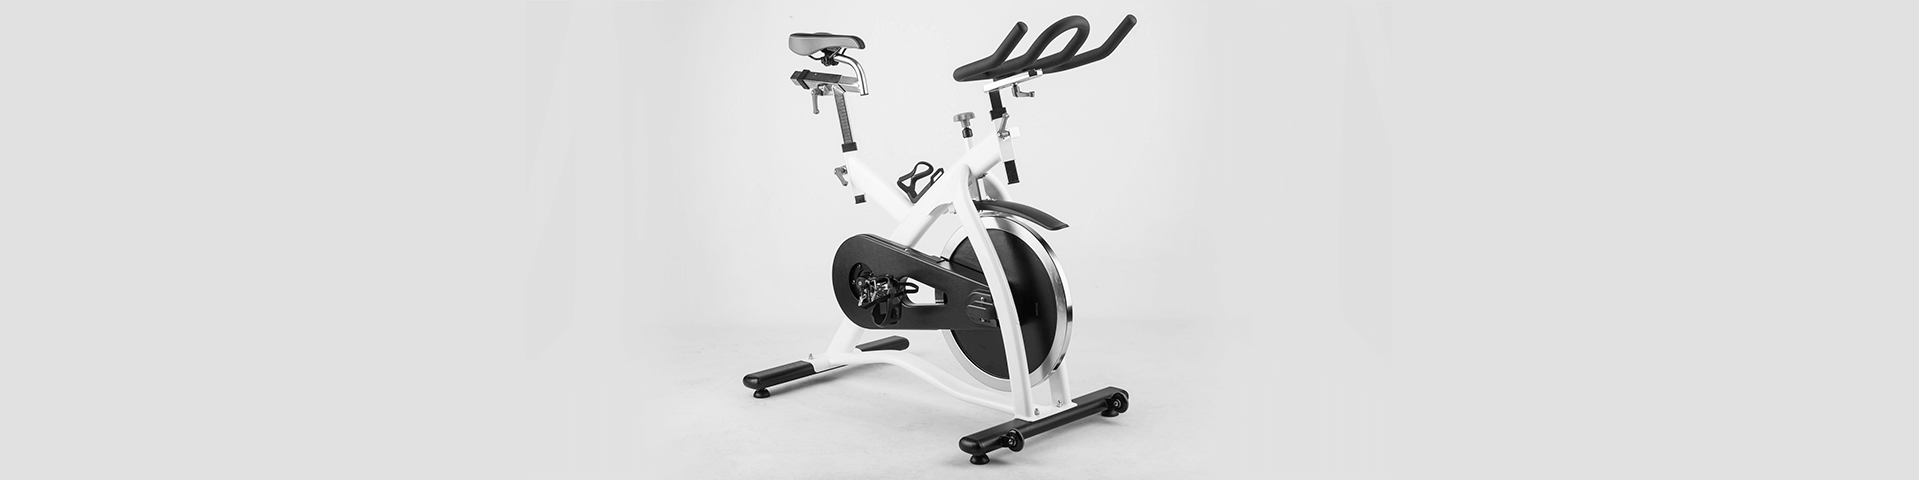 Adjusting a Spin Bike to Fit